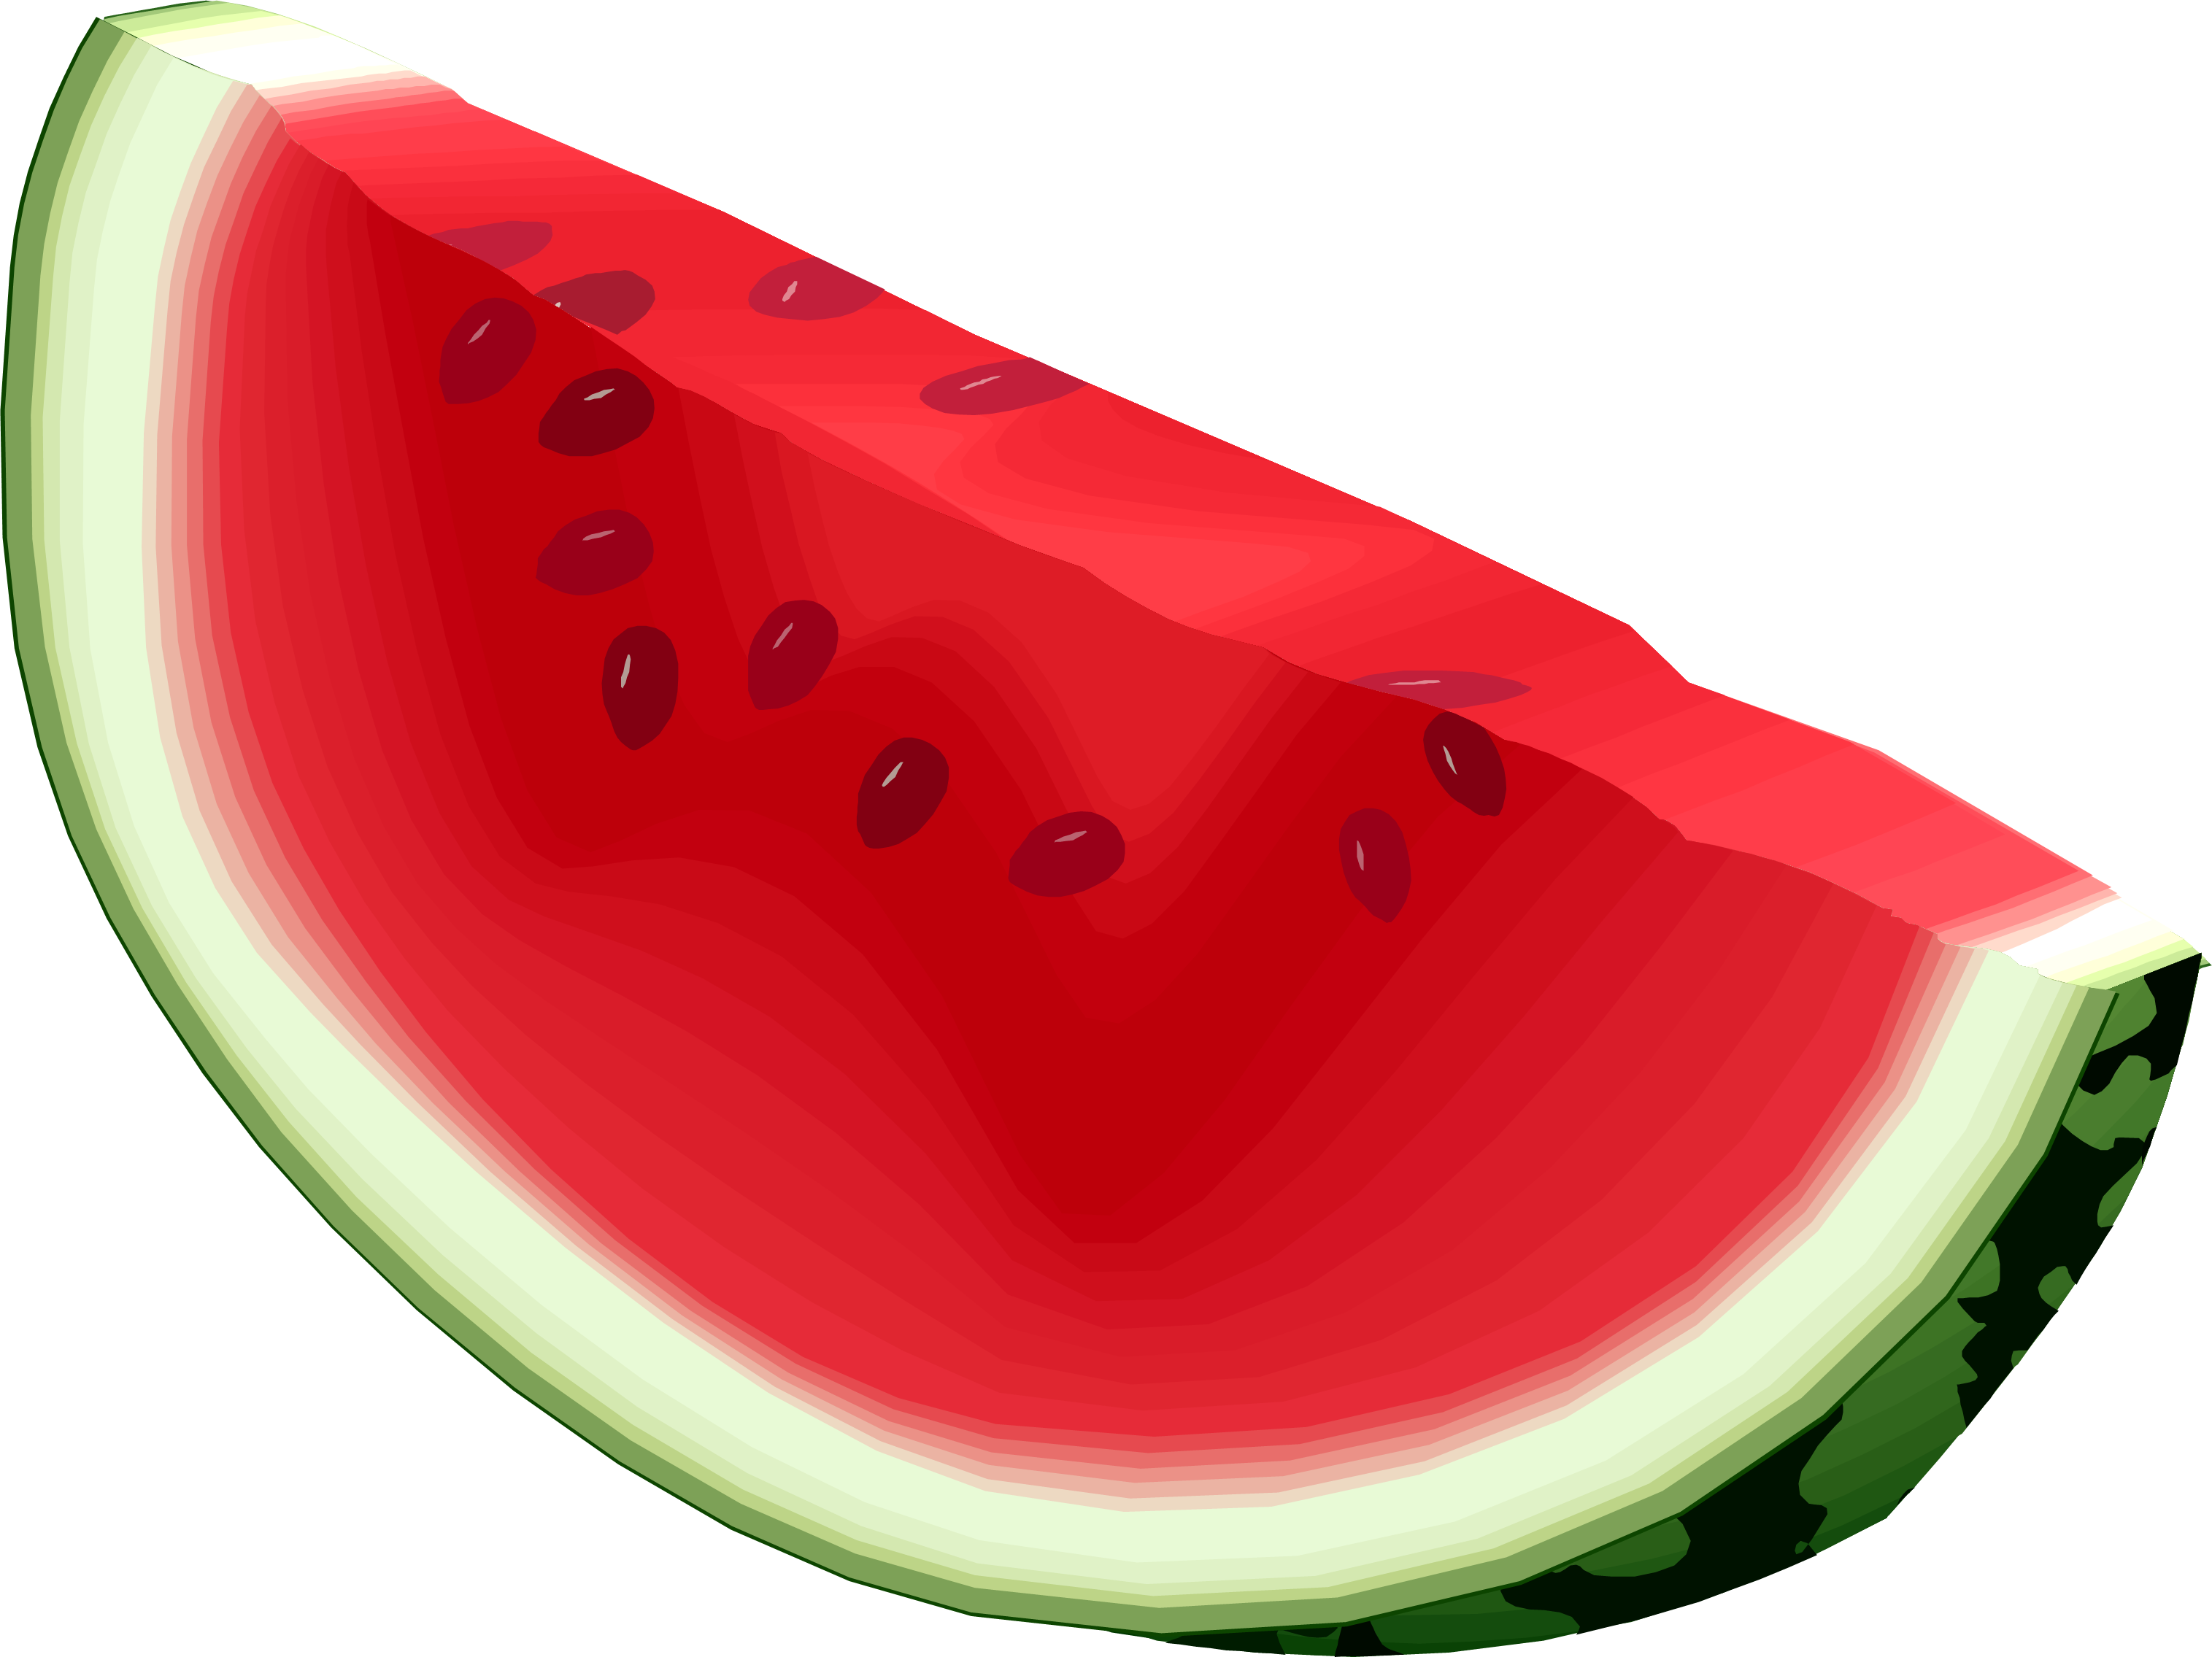 3031x2271 Image Cartoon Watermelon Clip Art Clipartcow 3